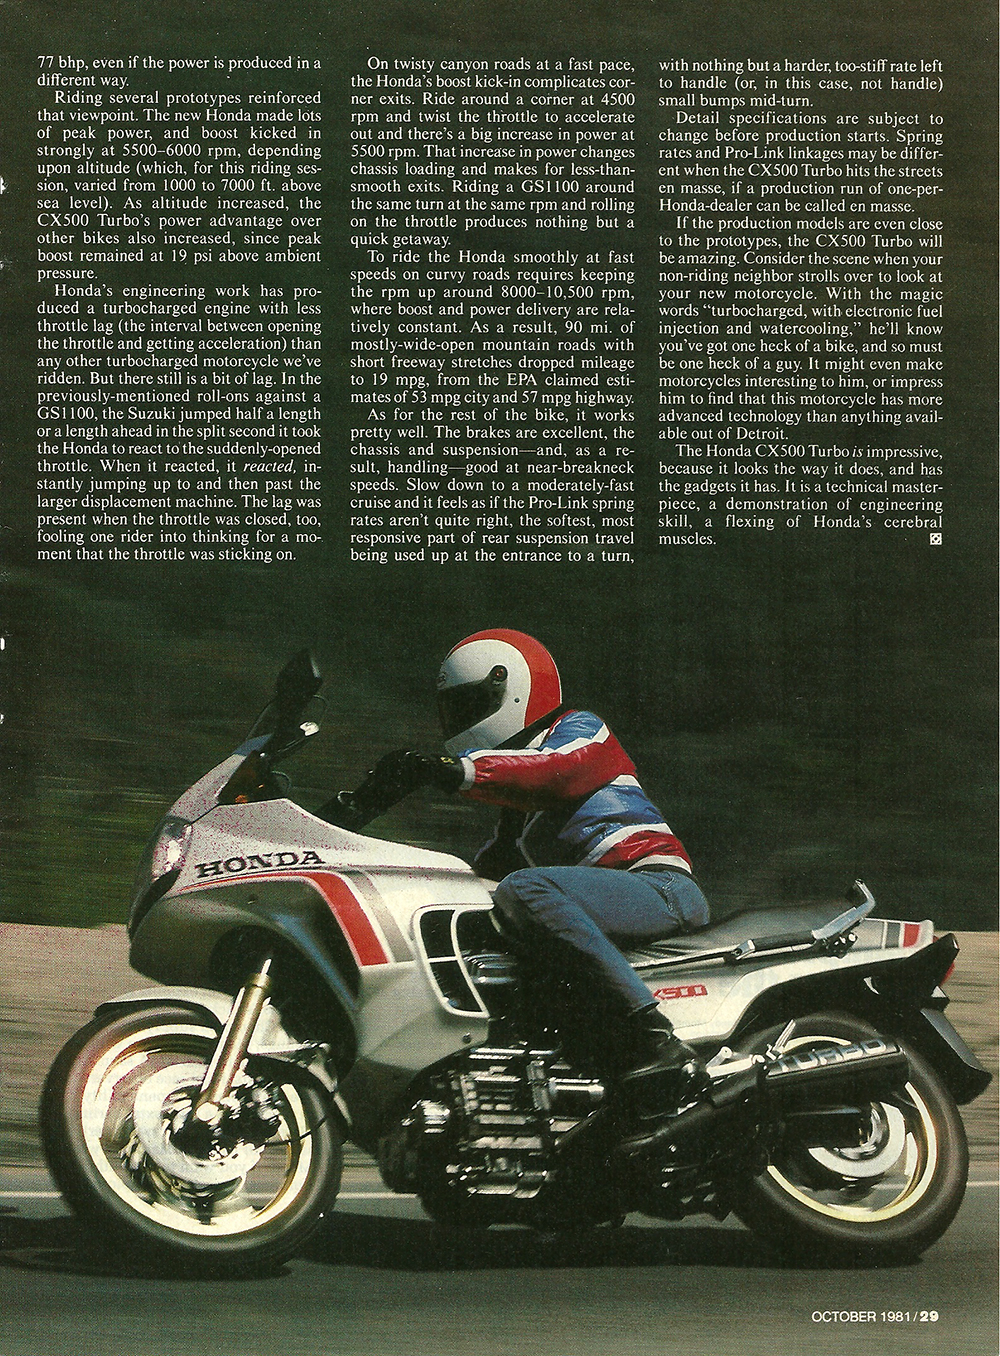 1981 Honda CX500 Turbo road test 4.jpg